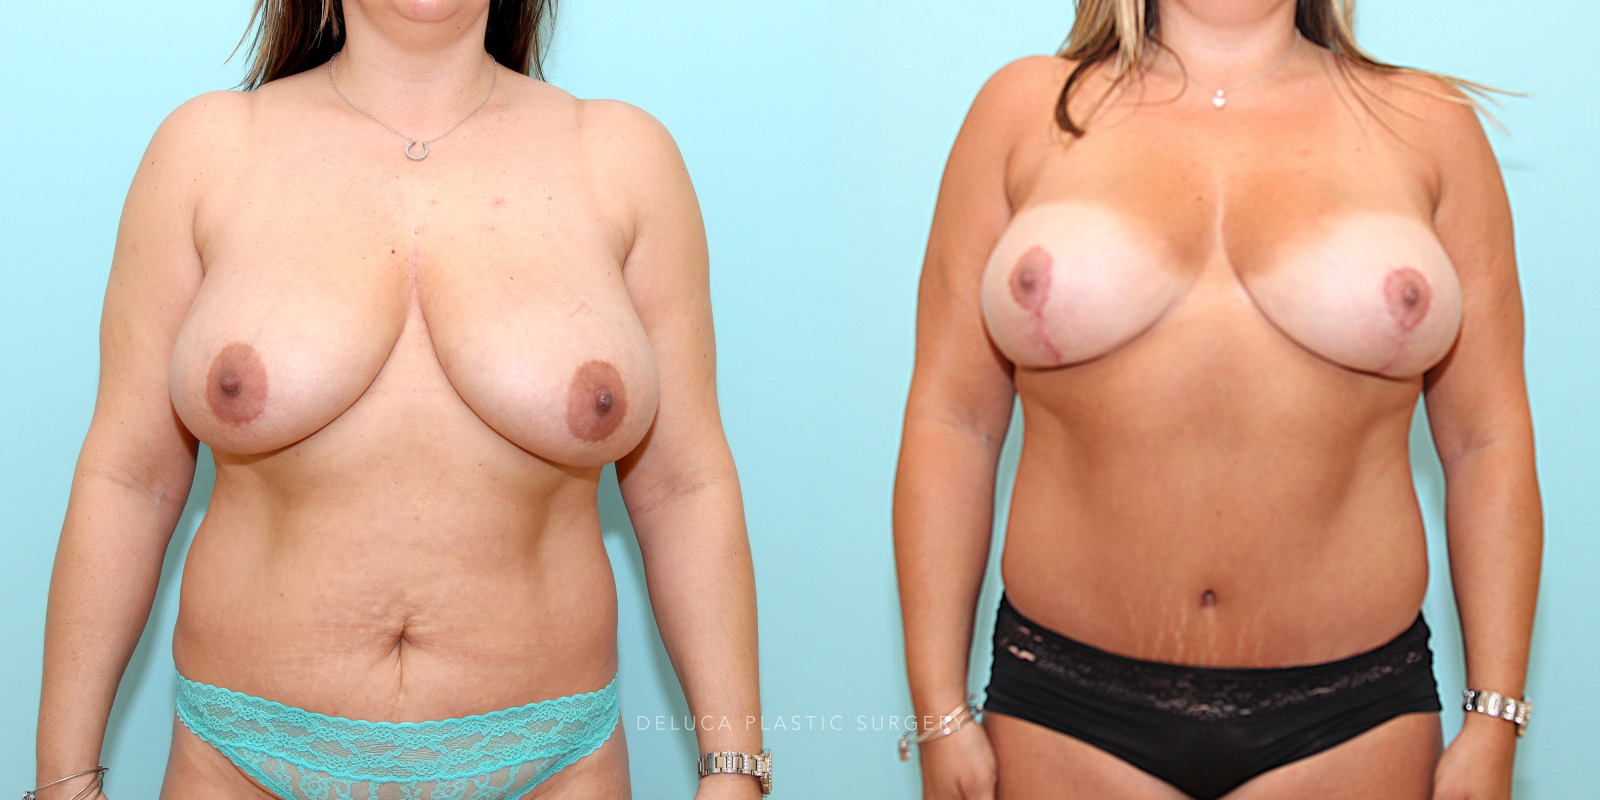 37 year old Mommy Makeover- Breast Lift (Mastopexy) and Tummy Tuck (Abdominoplasty)